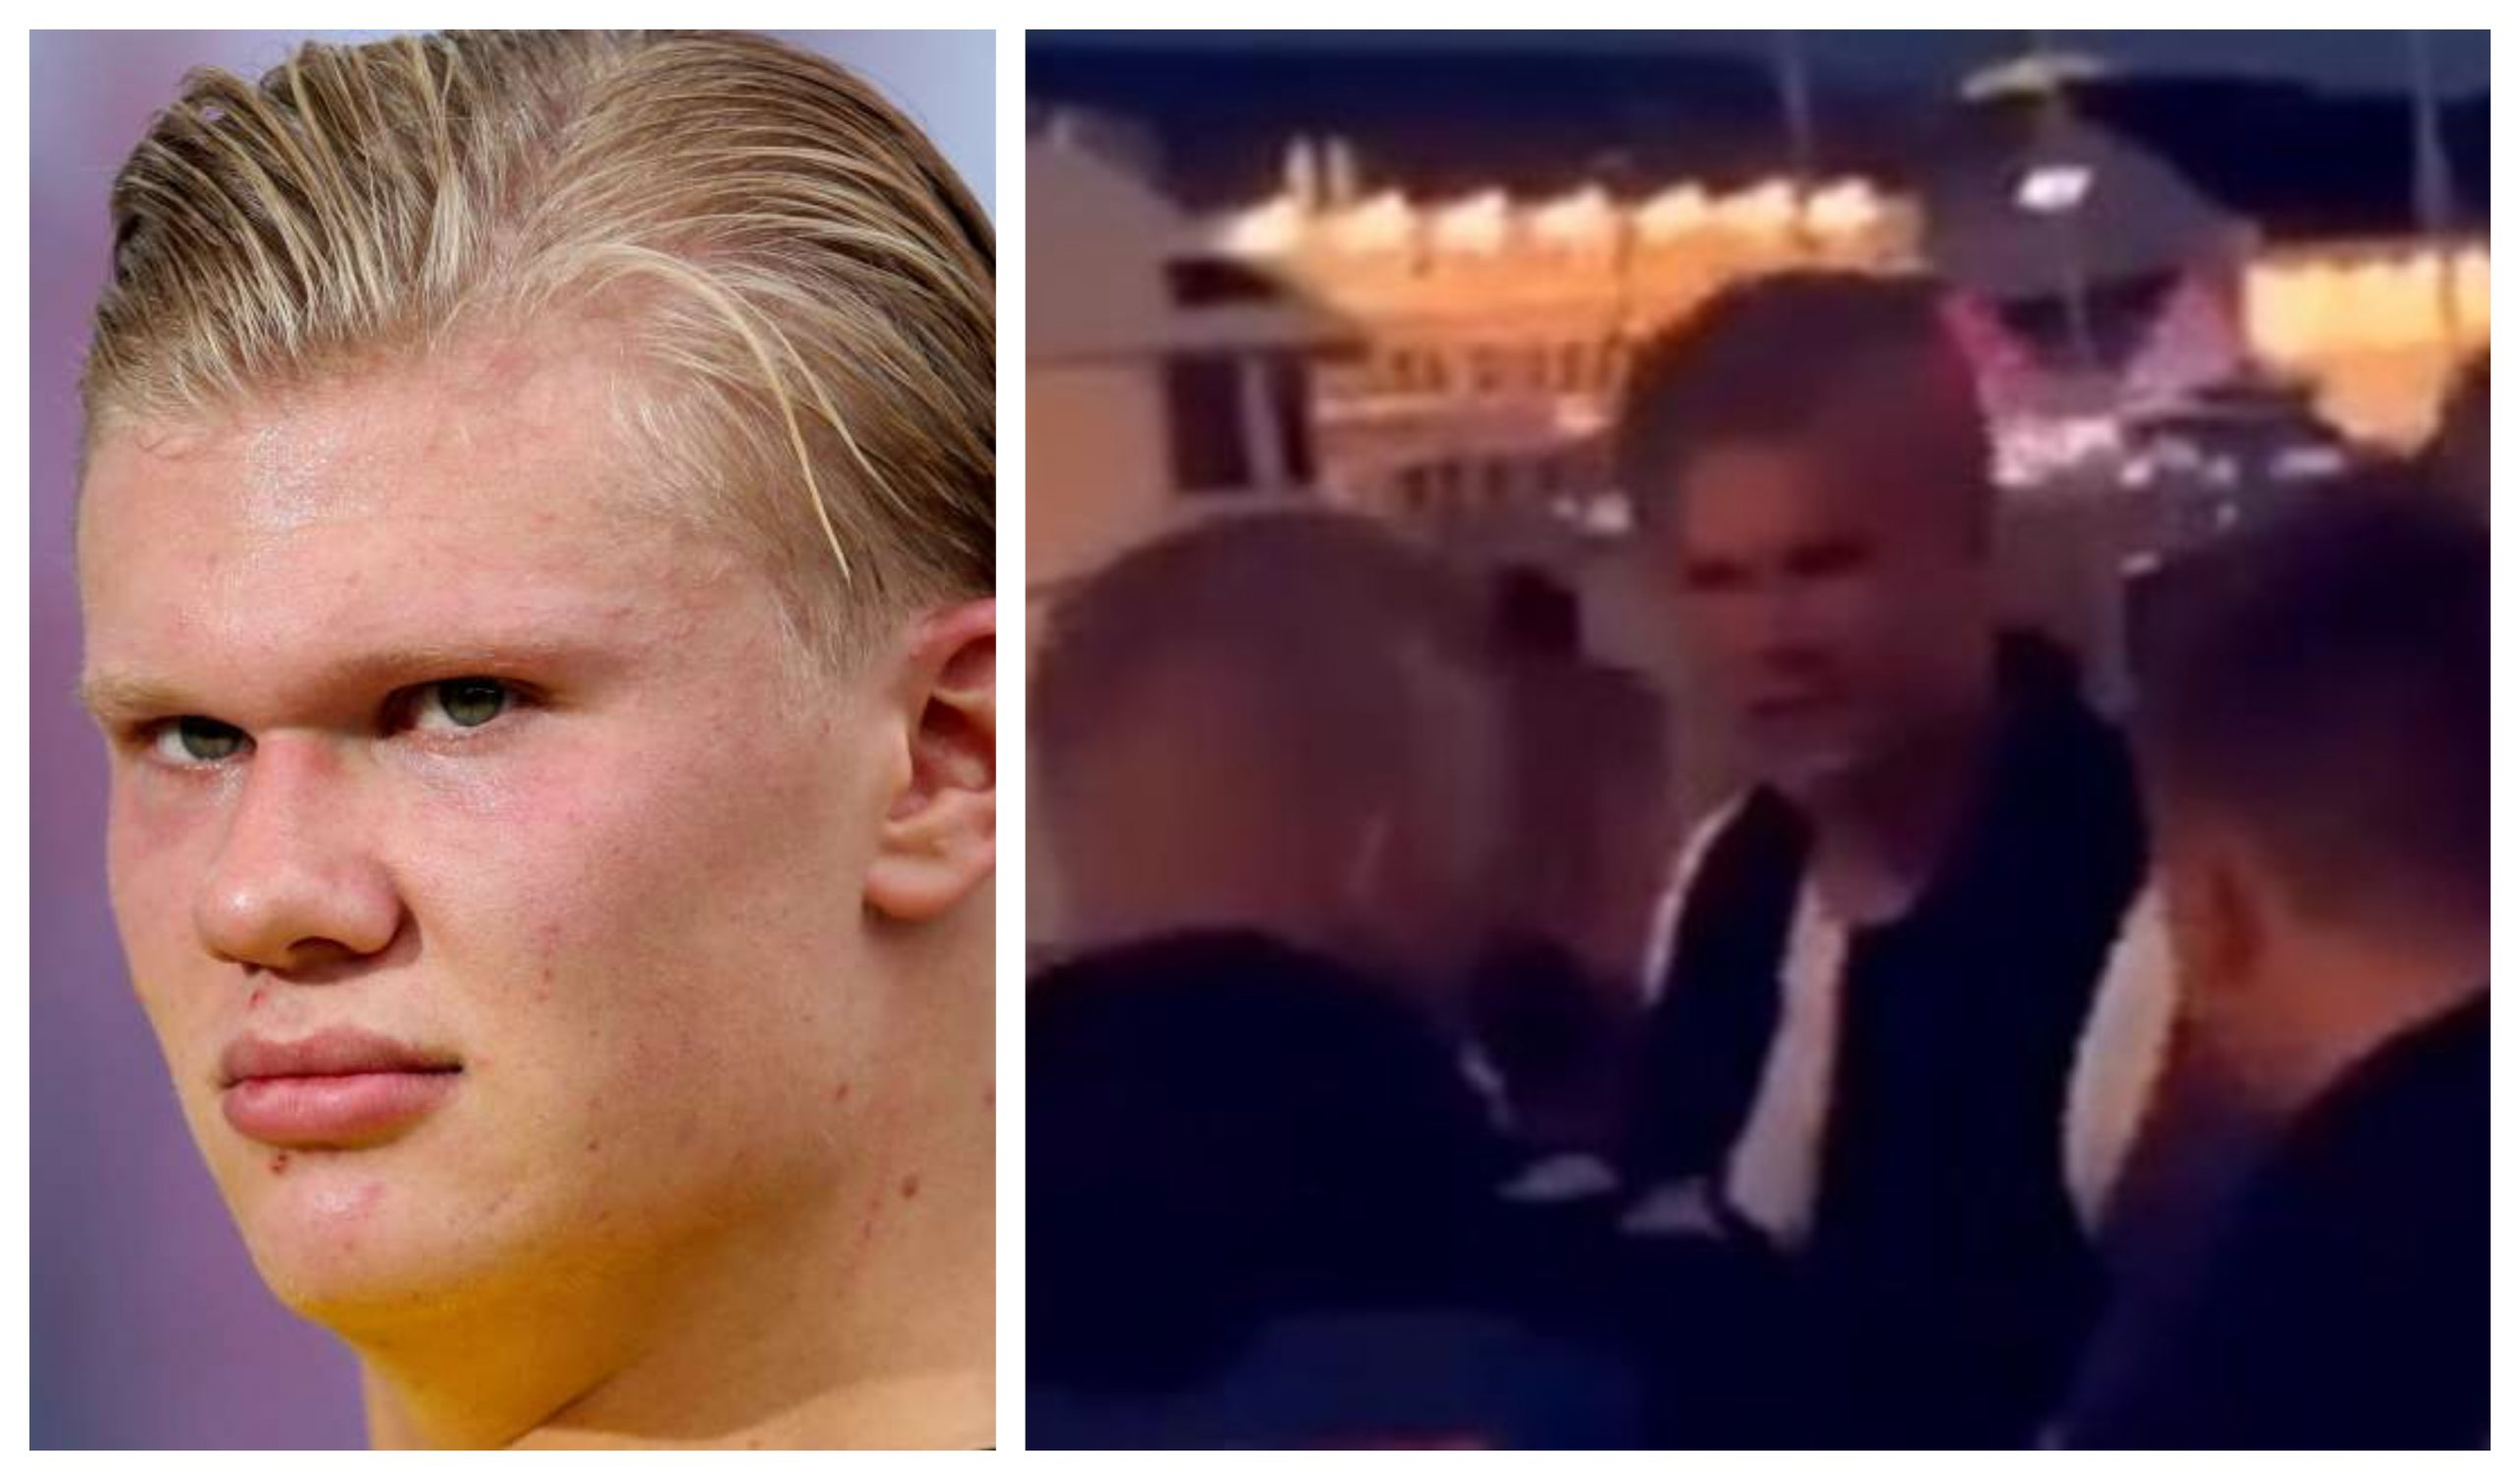 Man Marked Erling Blaut Haaland Kicked Out Of A Nightclub In Norway